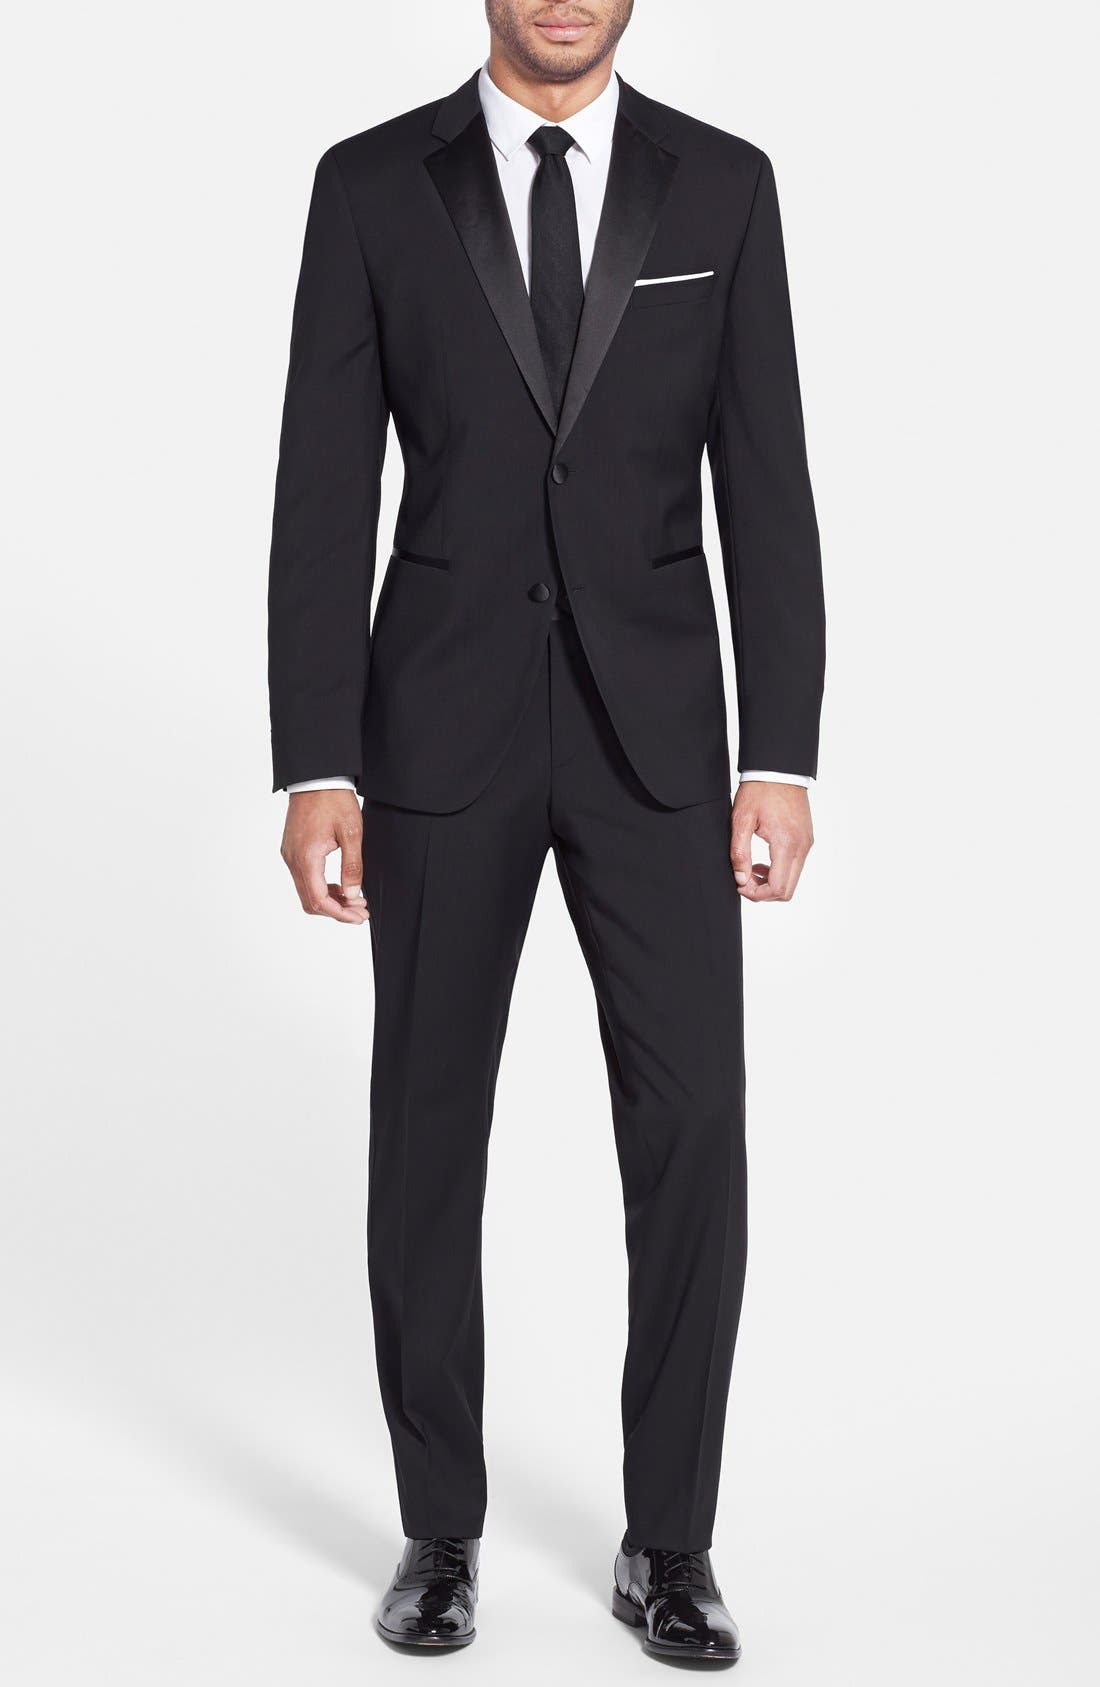 The Stars/Glamour Trim Fit Wool Tuxedo,                         Main,                         color, Black